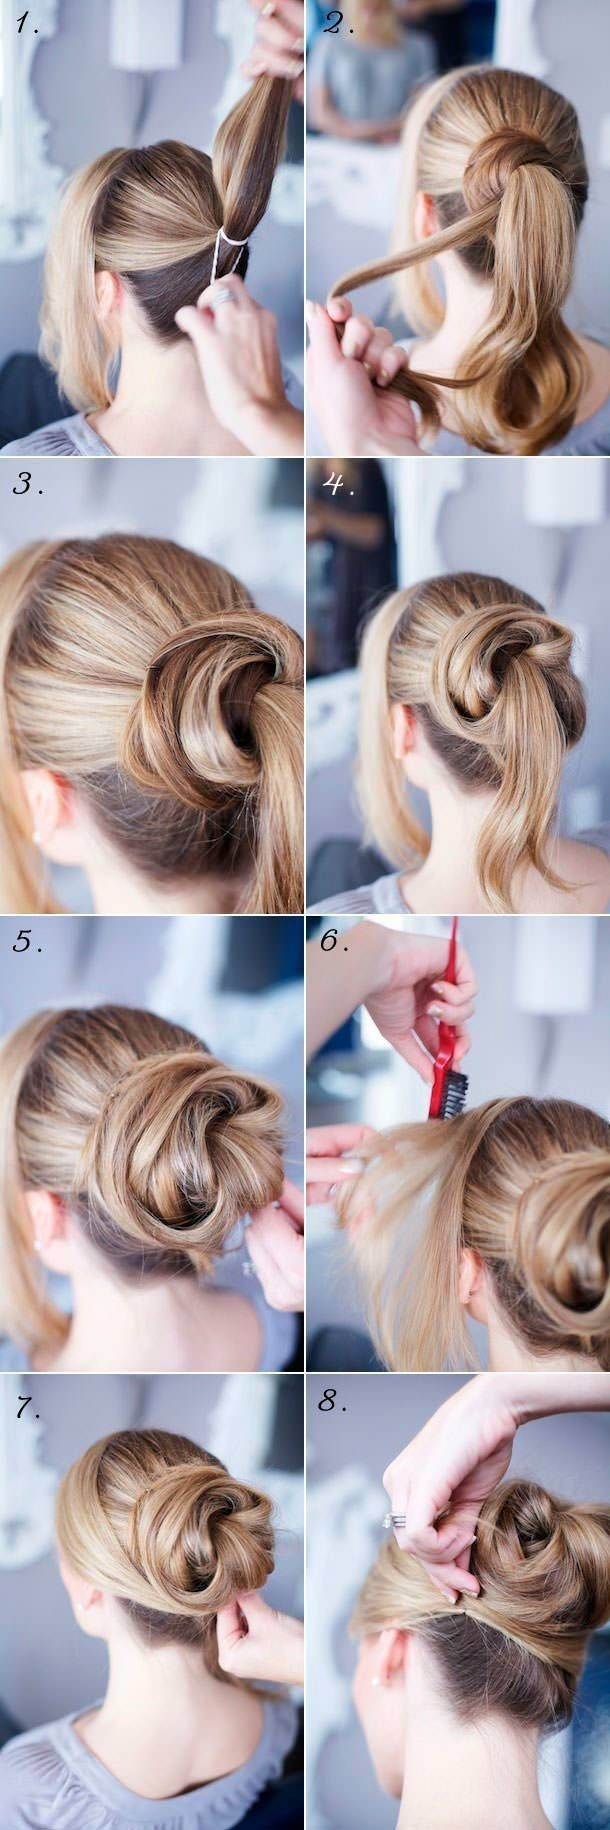 Pleasant 14 Easy Step By Step Updo Hairstyles Tutorials Pretty Designs Hairstyle Inspiration Daily Dogsangcom